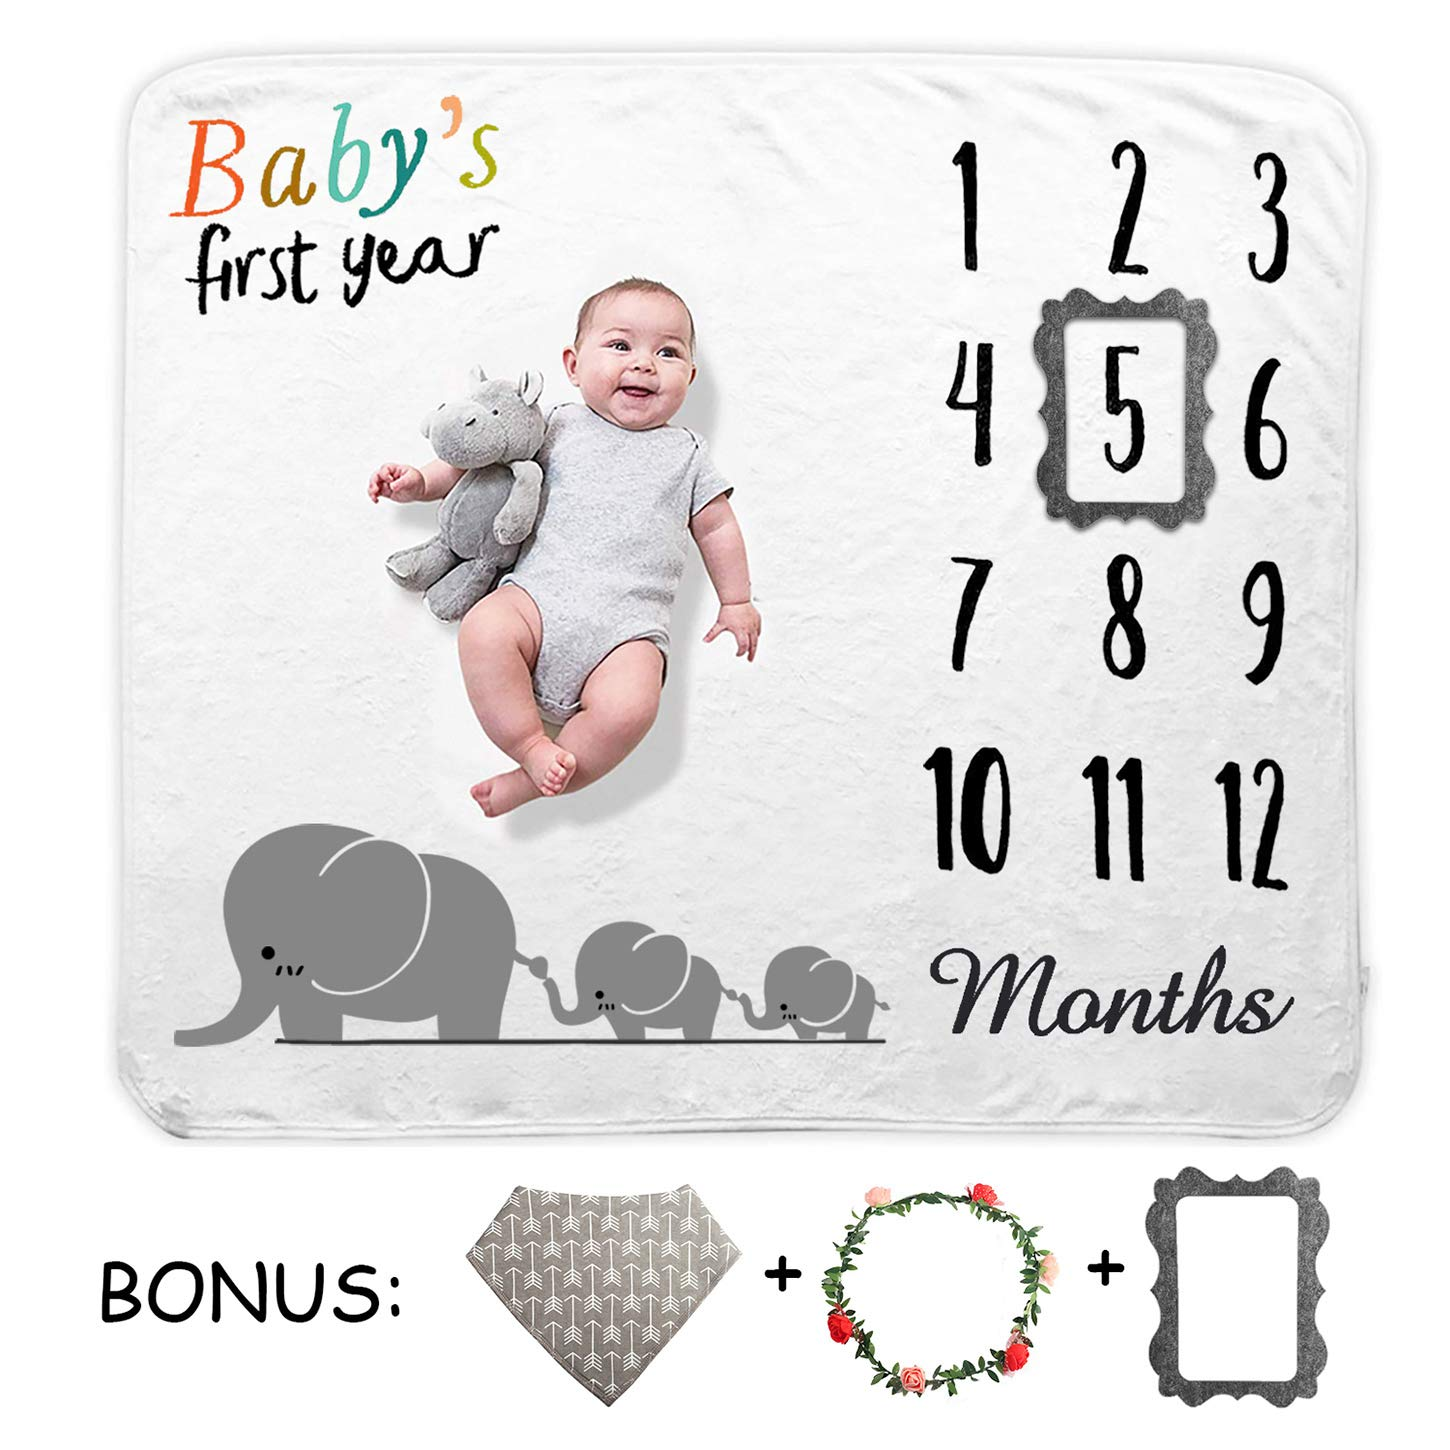 TUTUWEN Baby Monthly Milestone Blanket, Growth Blanket Photography Background Prop, Photo Memory Shower Gift for Infant Boy Girl Unisex-Includes Head Garland, Bib and Frame Marker (40''x55'') by TUTUWEN